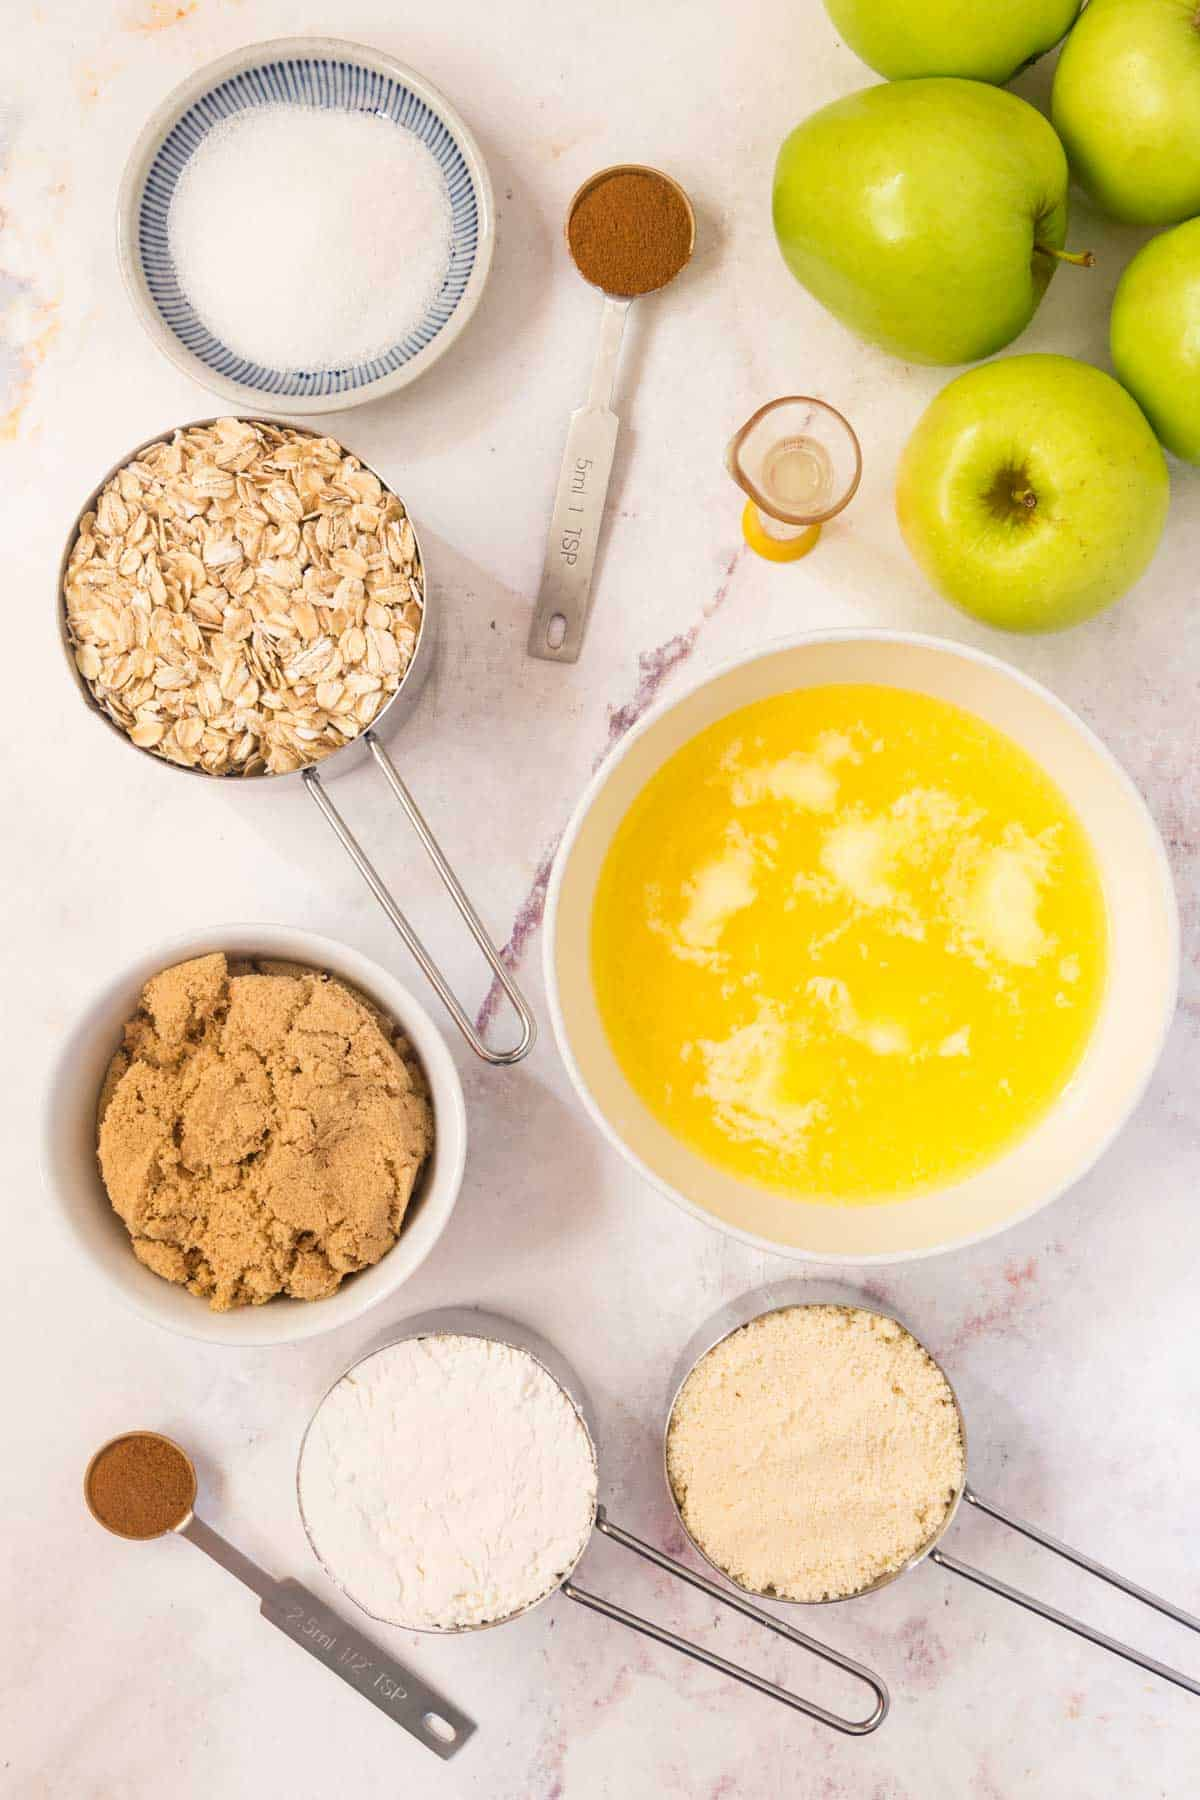 bowls of melted butter, granulated sugar, and brown sugar, two teaspoons of cinnamon, and measuring cups full of oats, almond flour, and gluten free flour, and a small beaker of lemon juice with some green apples on a marble countertop